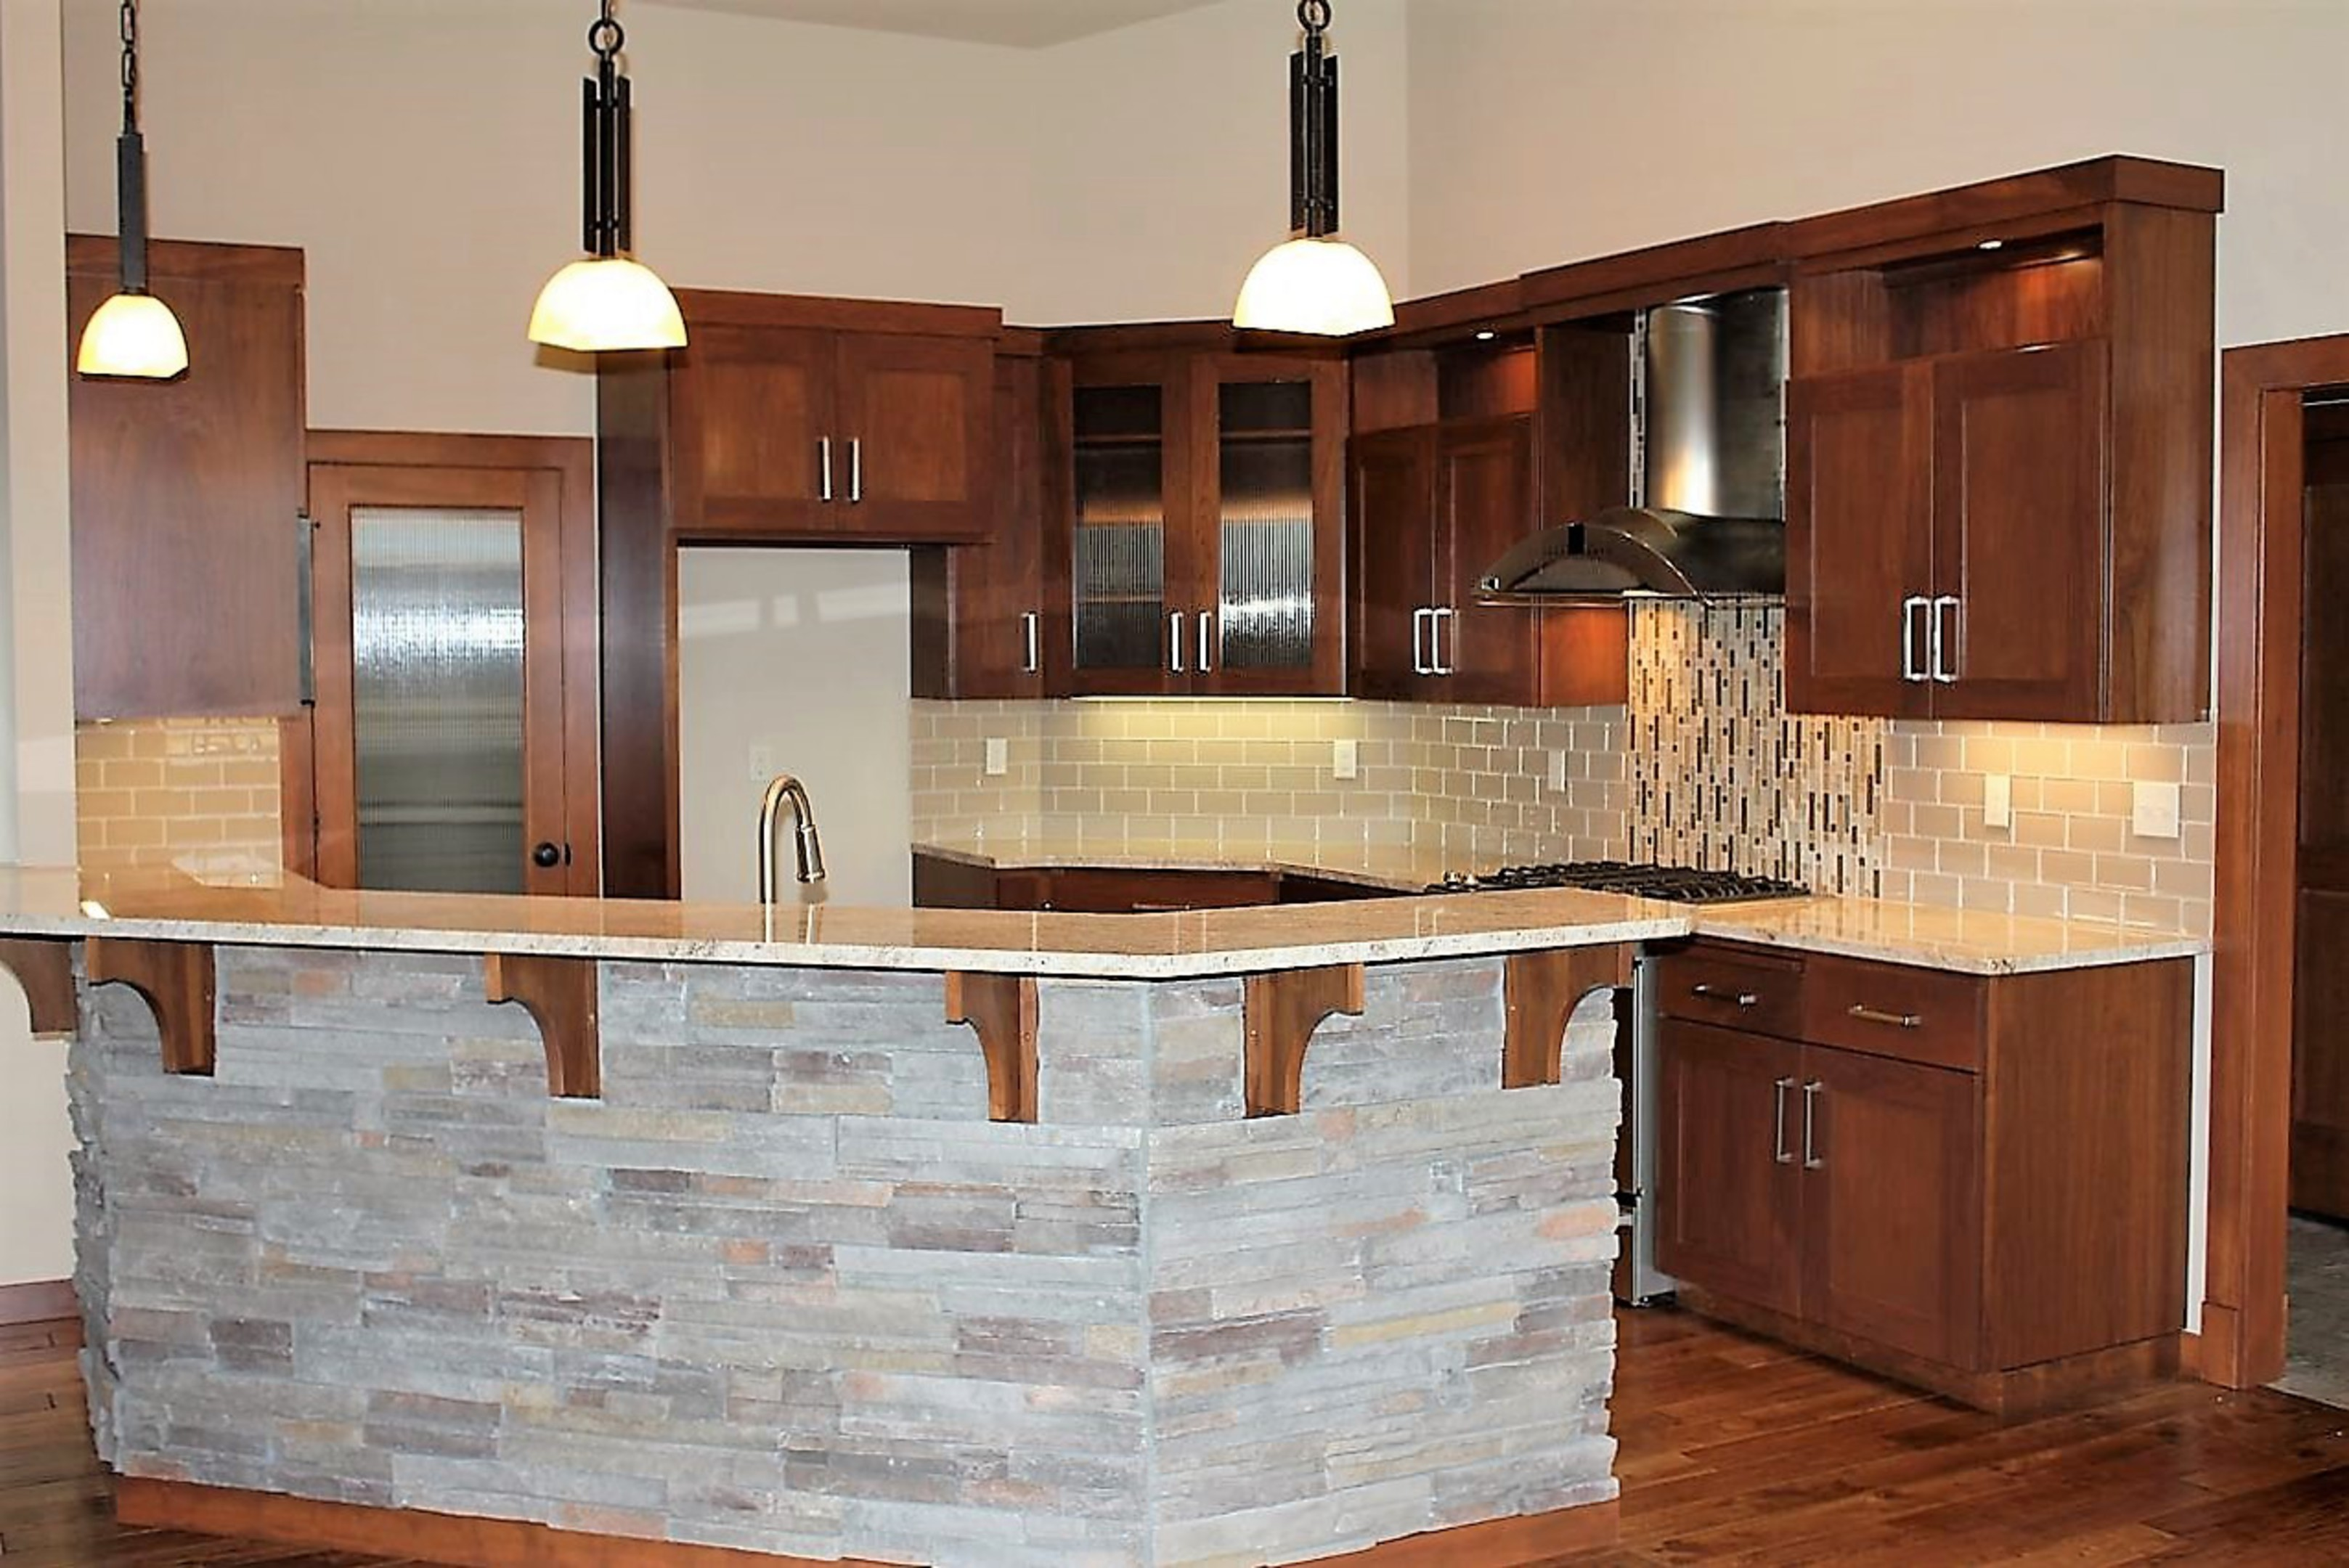 Kitchen  contemporary style  walnut  dark color  recessed panel  full overlay  rock island back   4 bar supports  reeded glass doors  chimney style hood with top  open space at top of the uppers